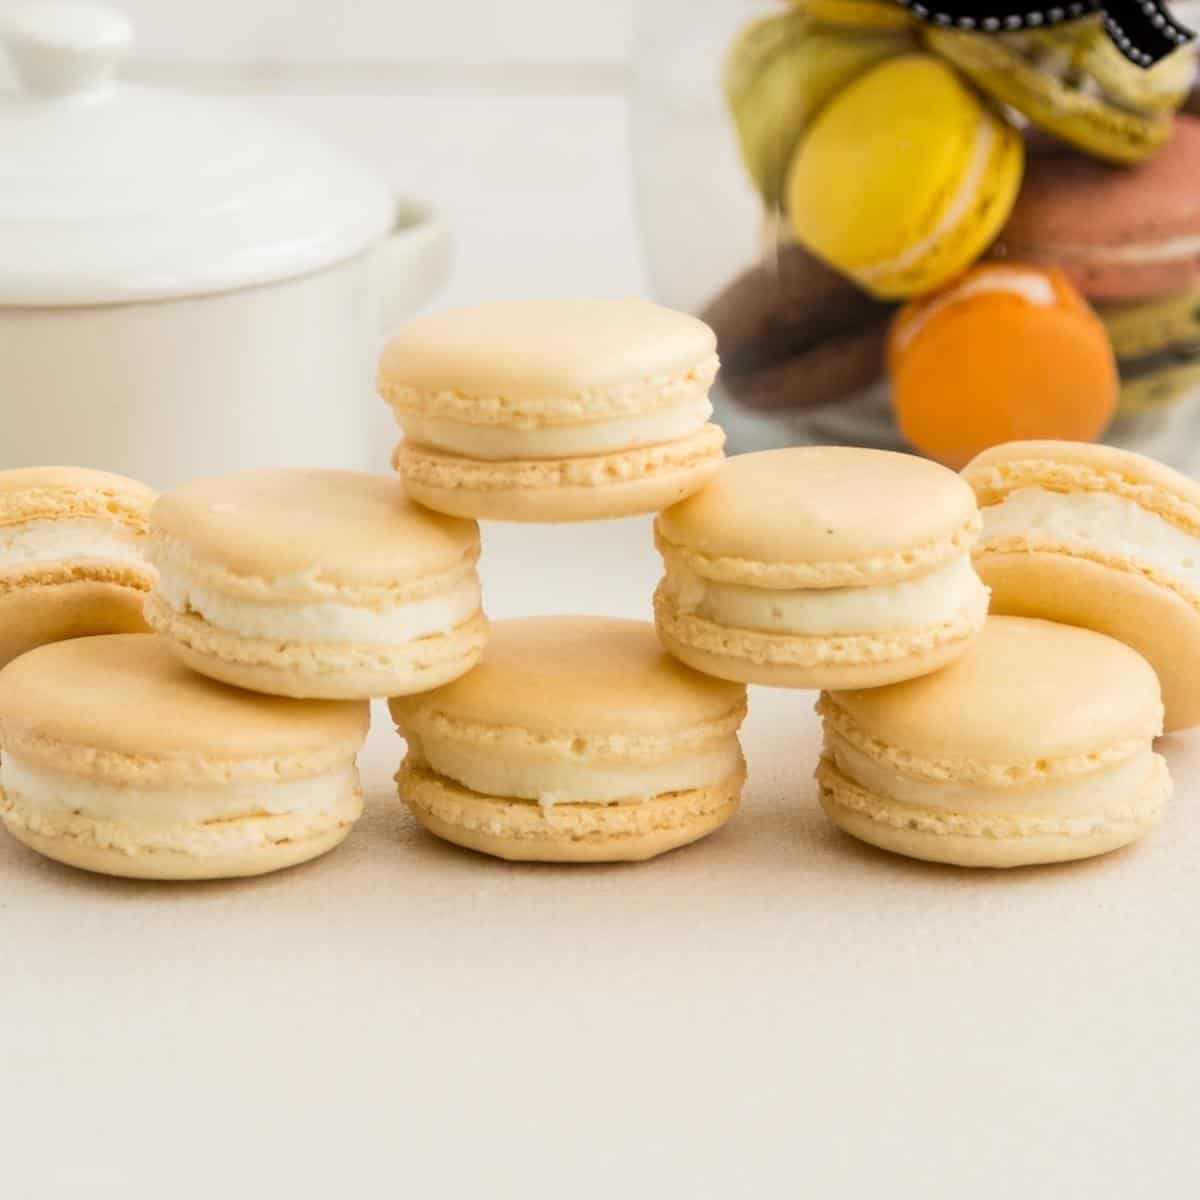 A stack of macarons on the white table